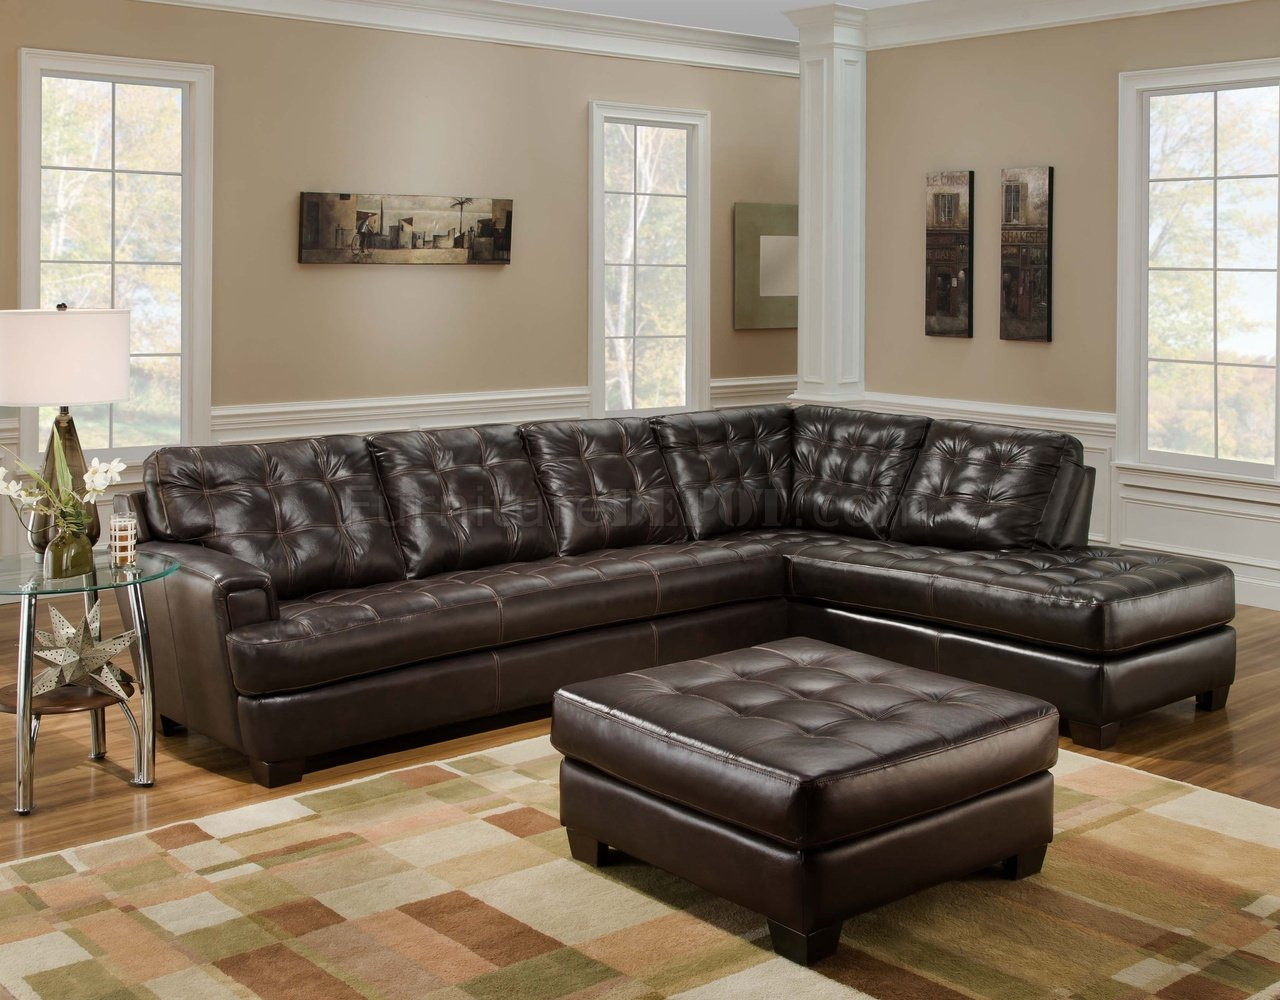 Chicory Brown Tufted Top Grain Leather Modern Sectional Sofa